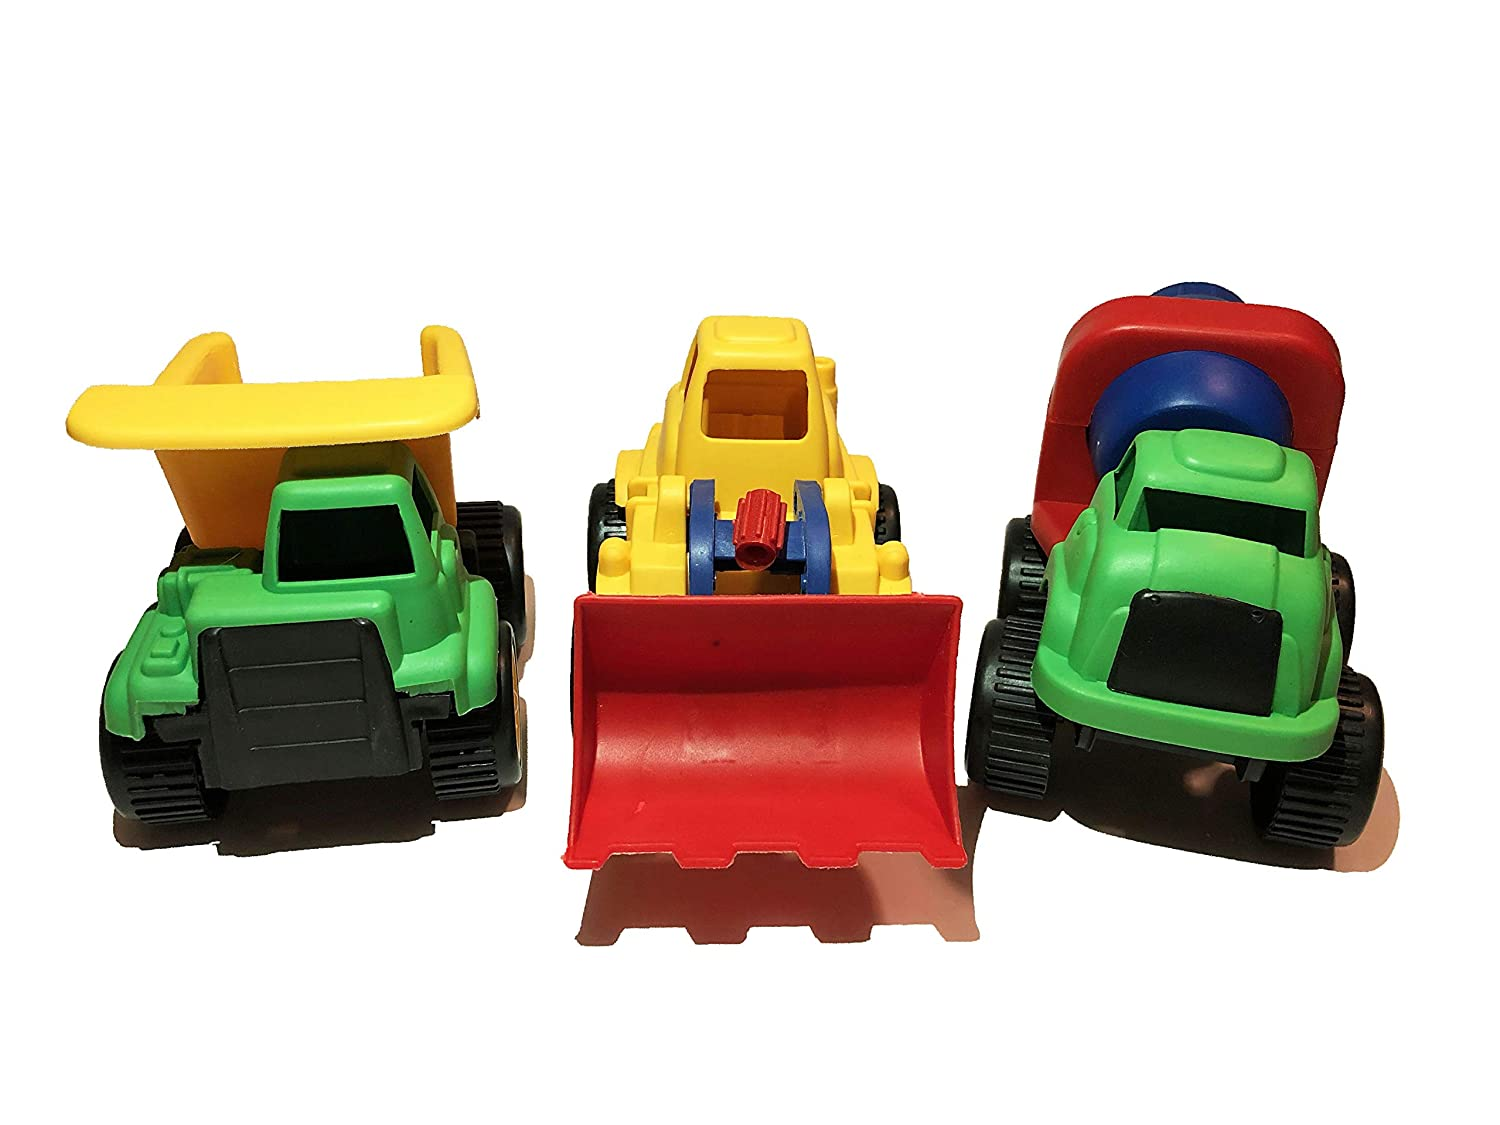 Nikkis Knick Knacks Plastic Toy Construction Vehicles Dump Truck Cement Fixer and Front Loader